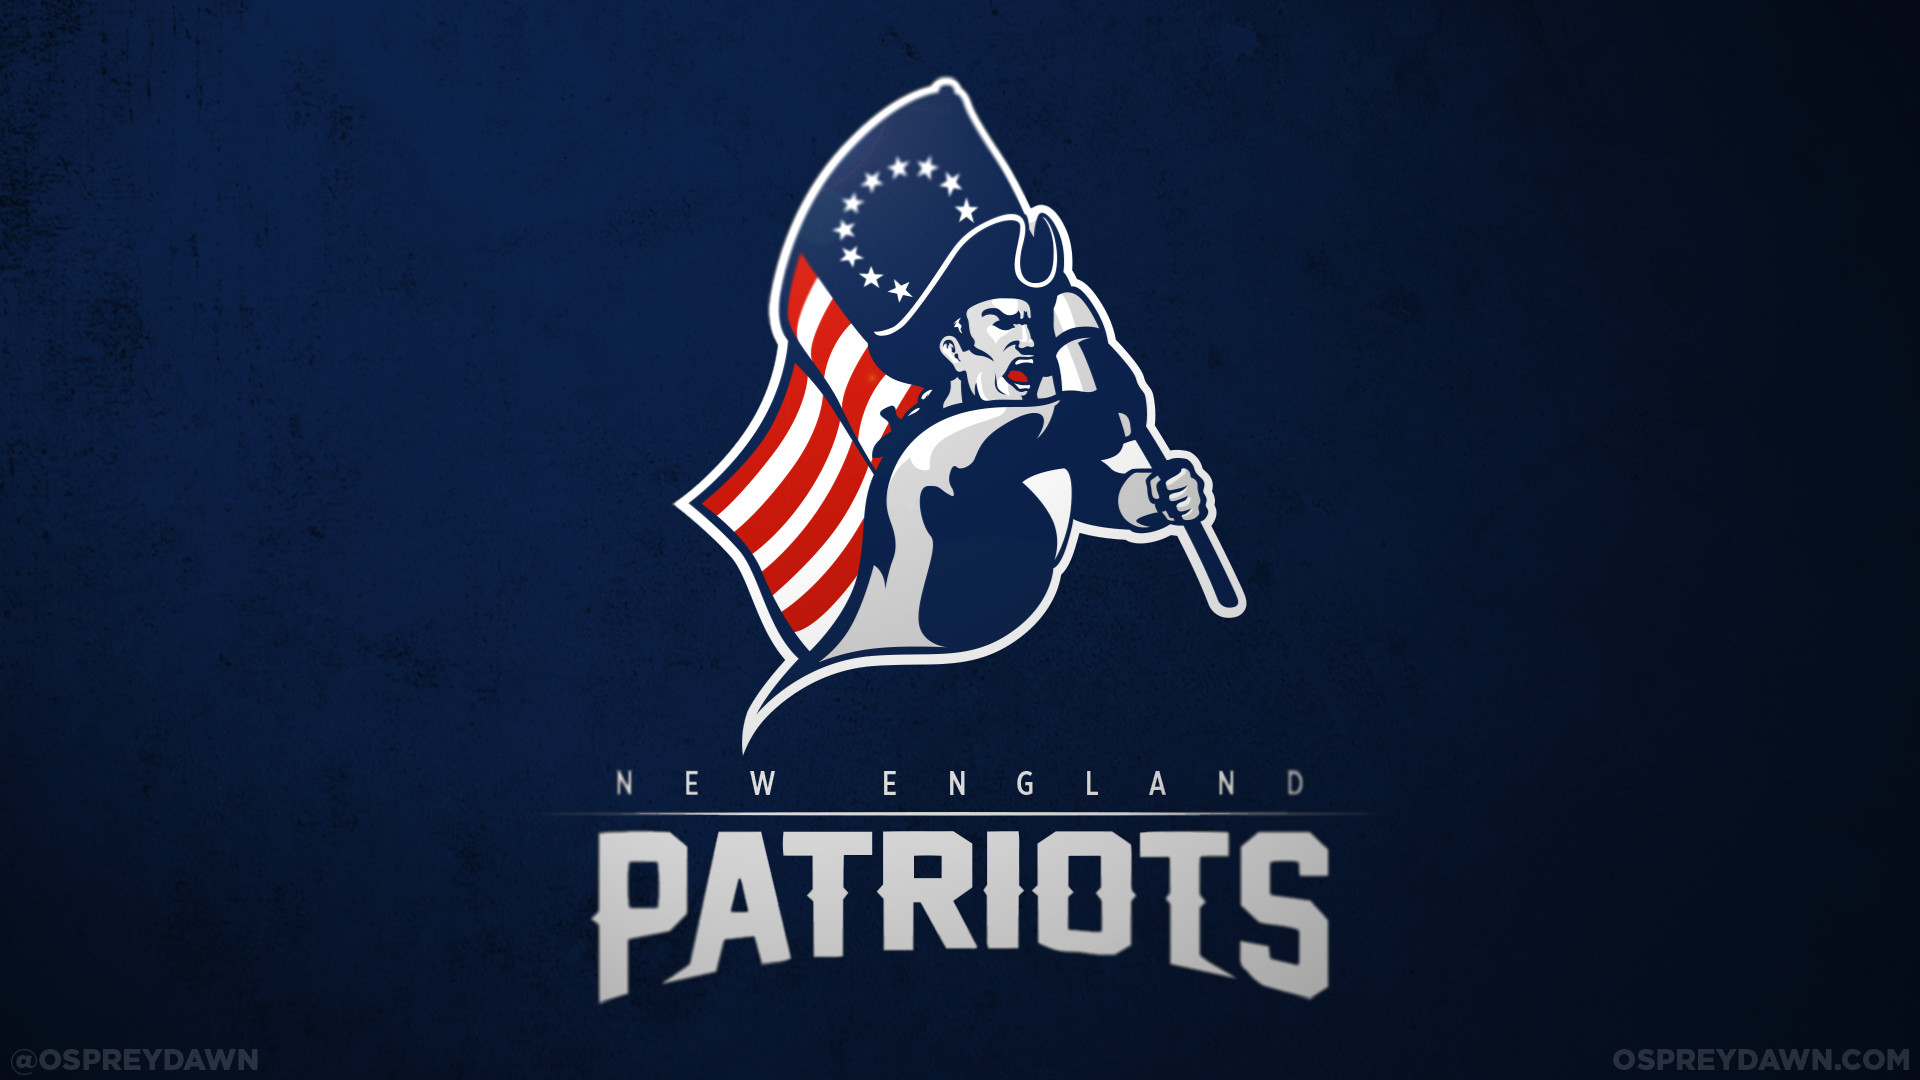 1920x1080 NEW ENGLAND PATRIOTS nfl football fw wallpaper |  | 154101 .